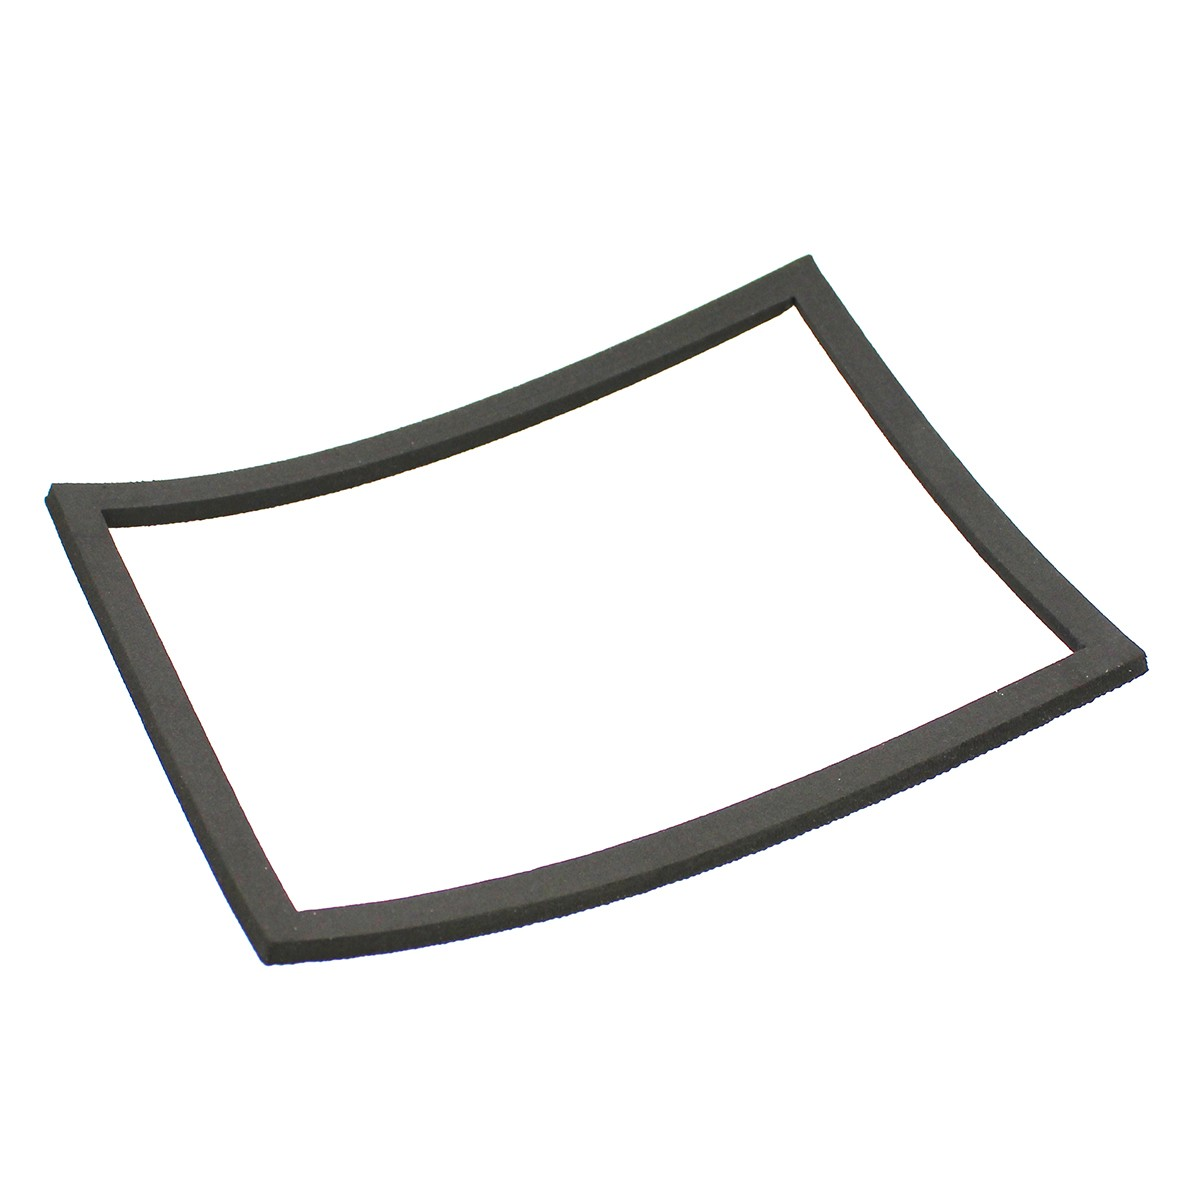 "1/4"" Thick Window Gasket For EZ-Blaster"